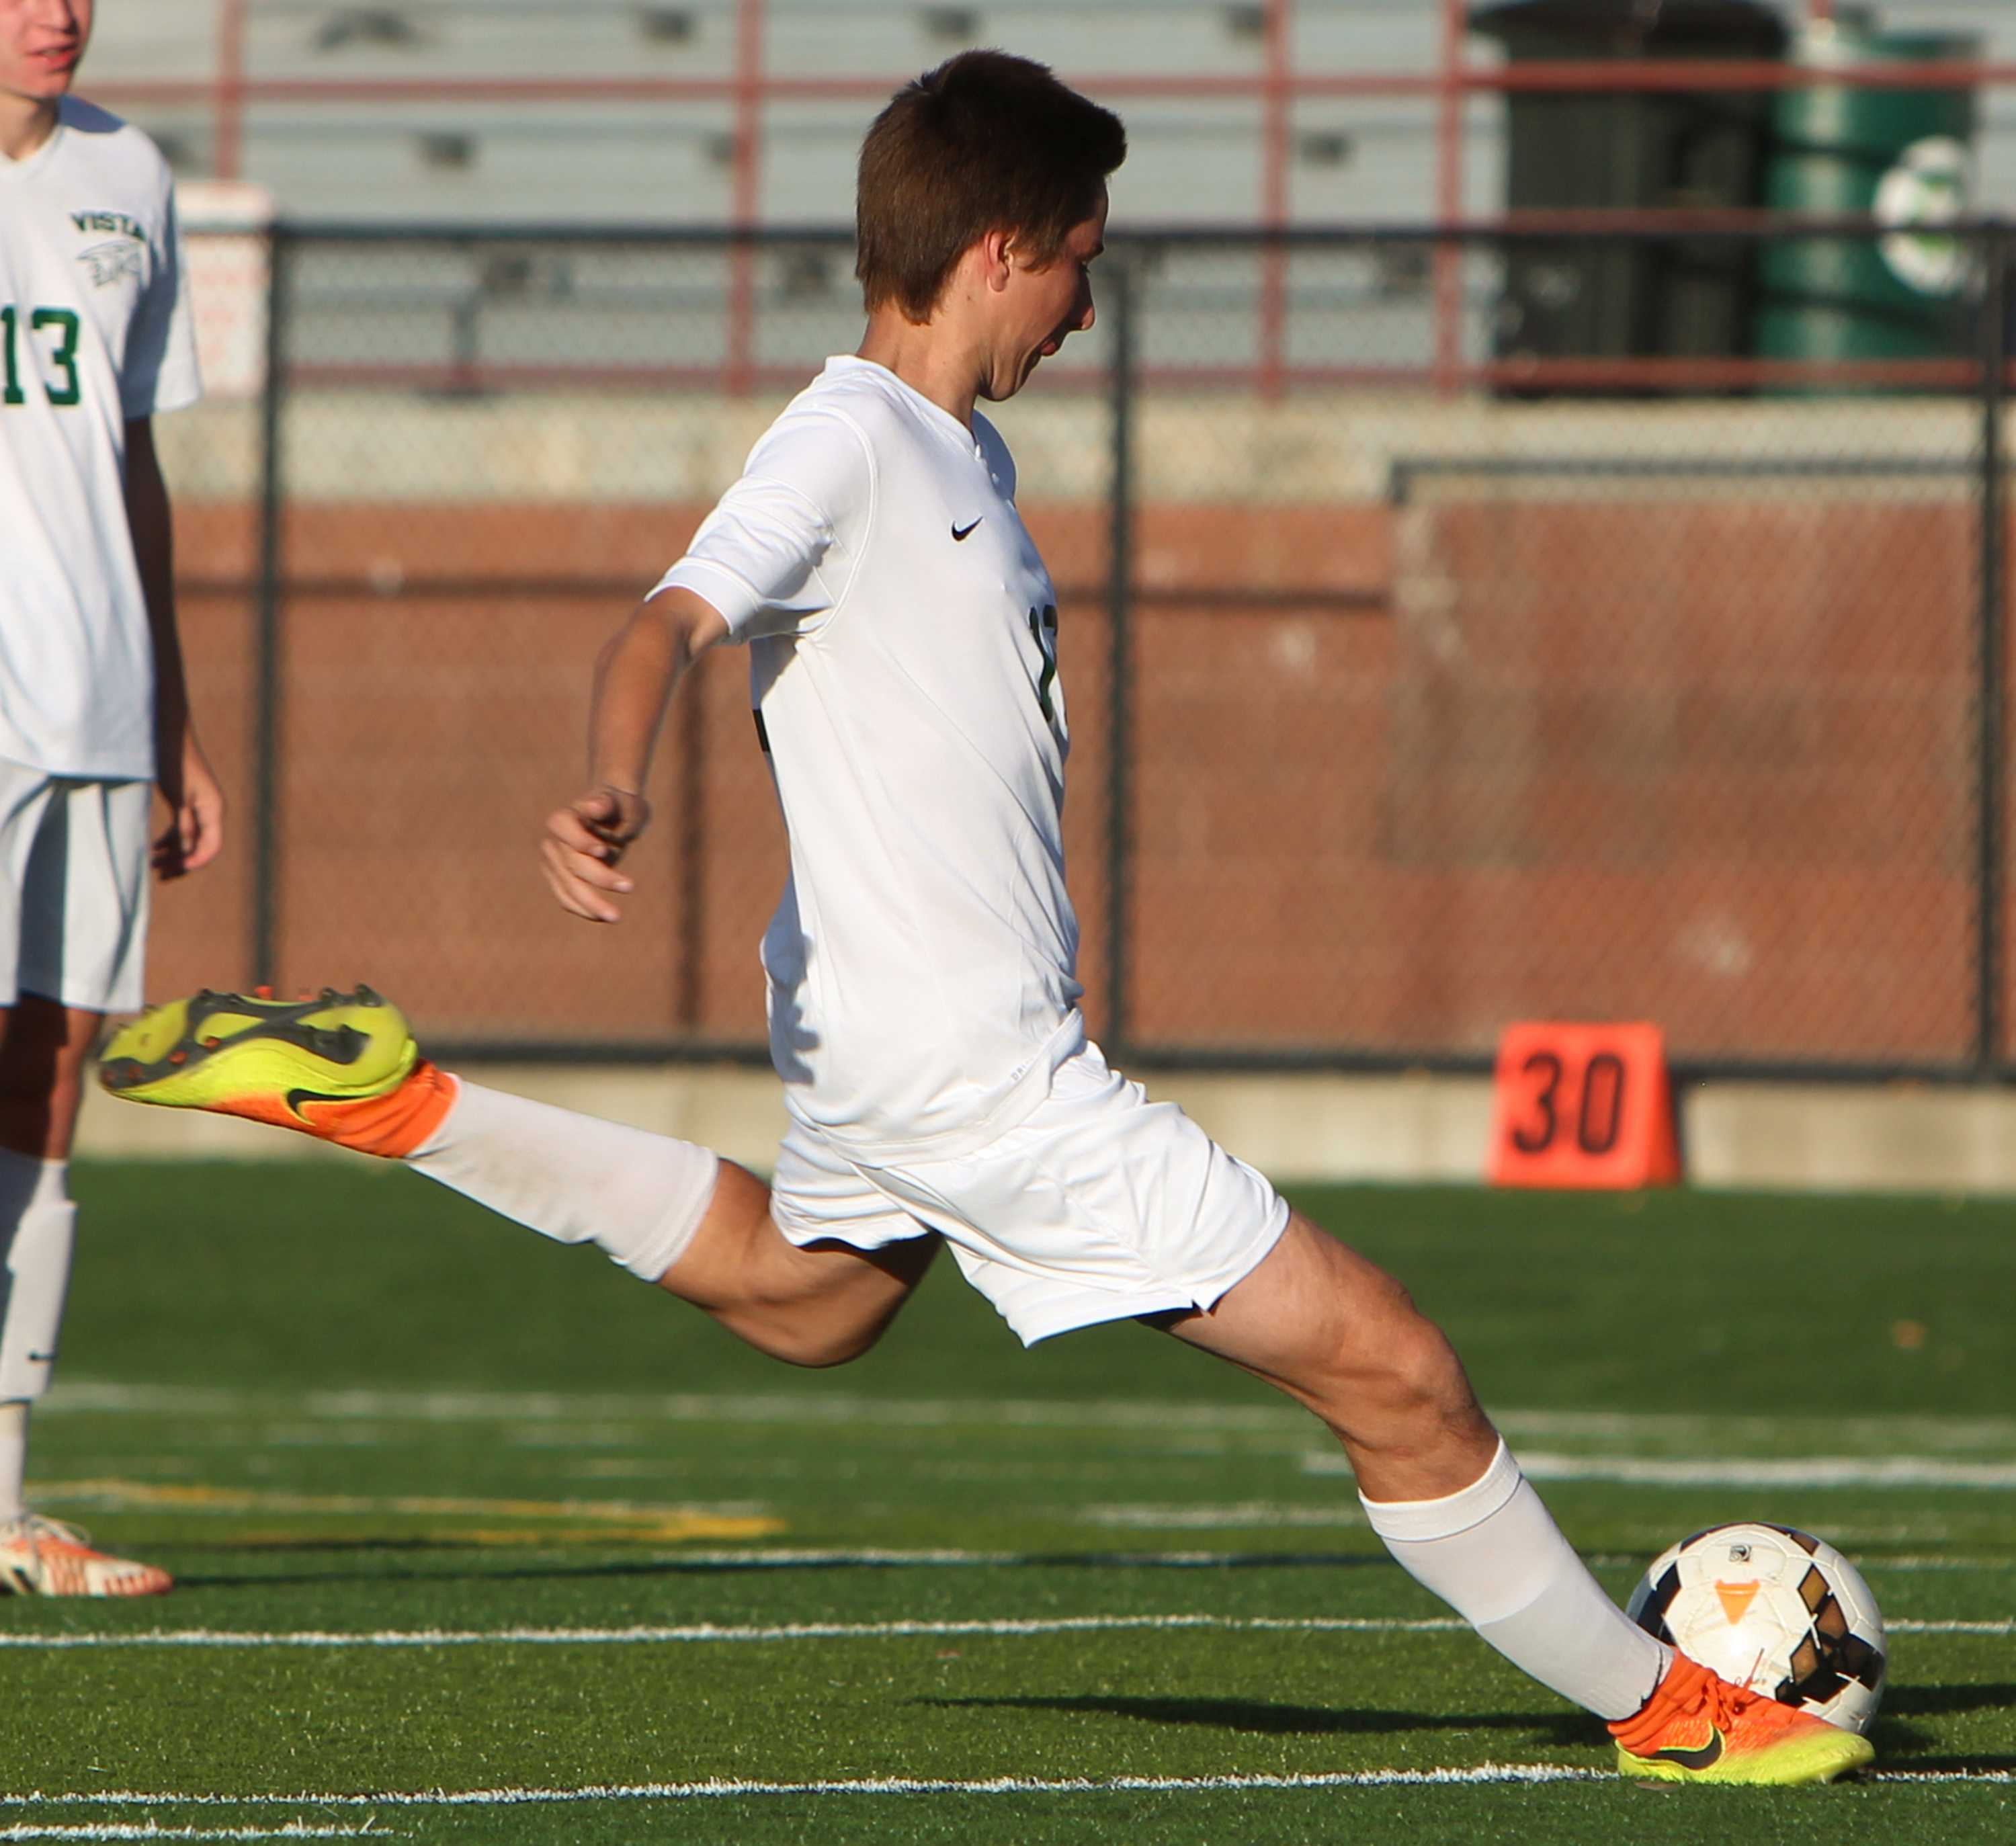 PHOTOS: Men's Varsity Soccer vs. Bear Creek